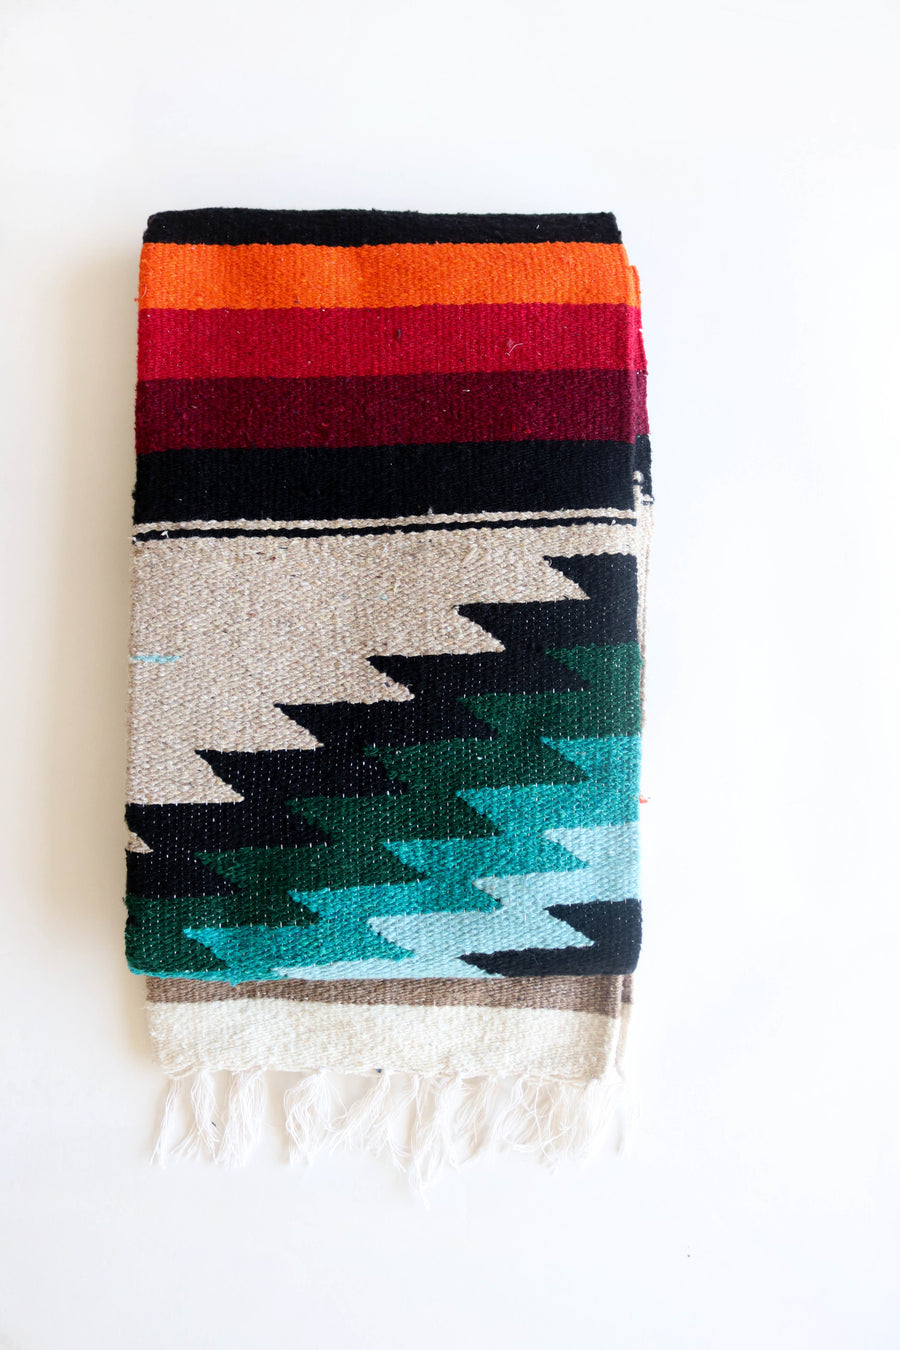 Fire and Ice Diamond // Handwoven Blanket